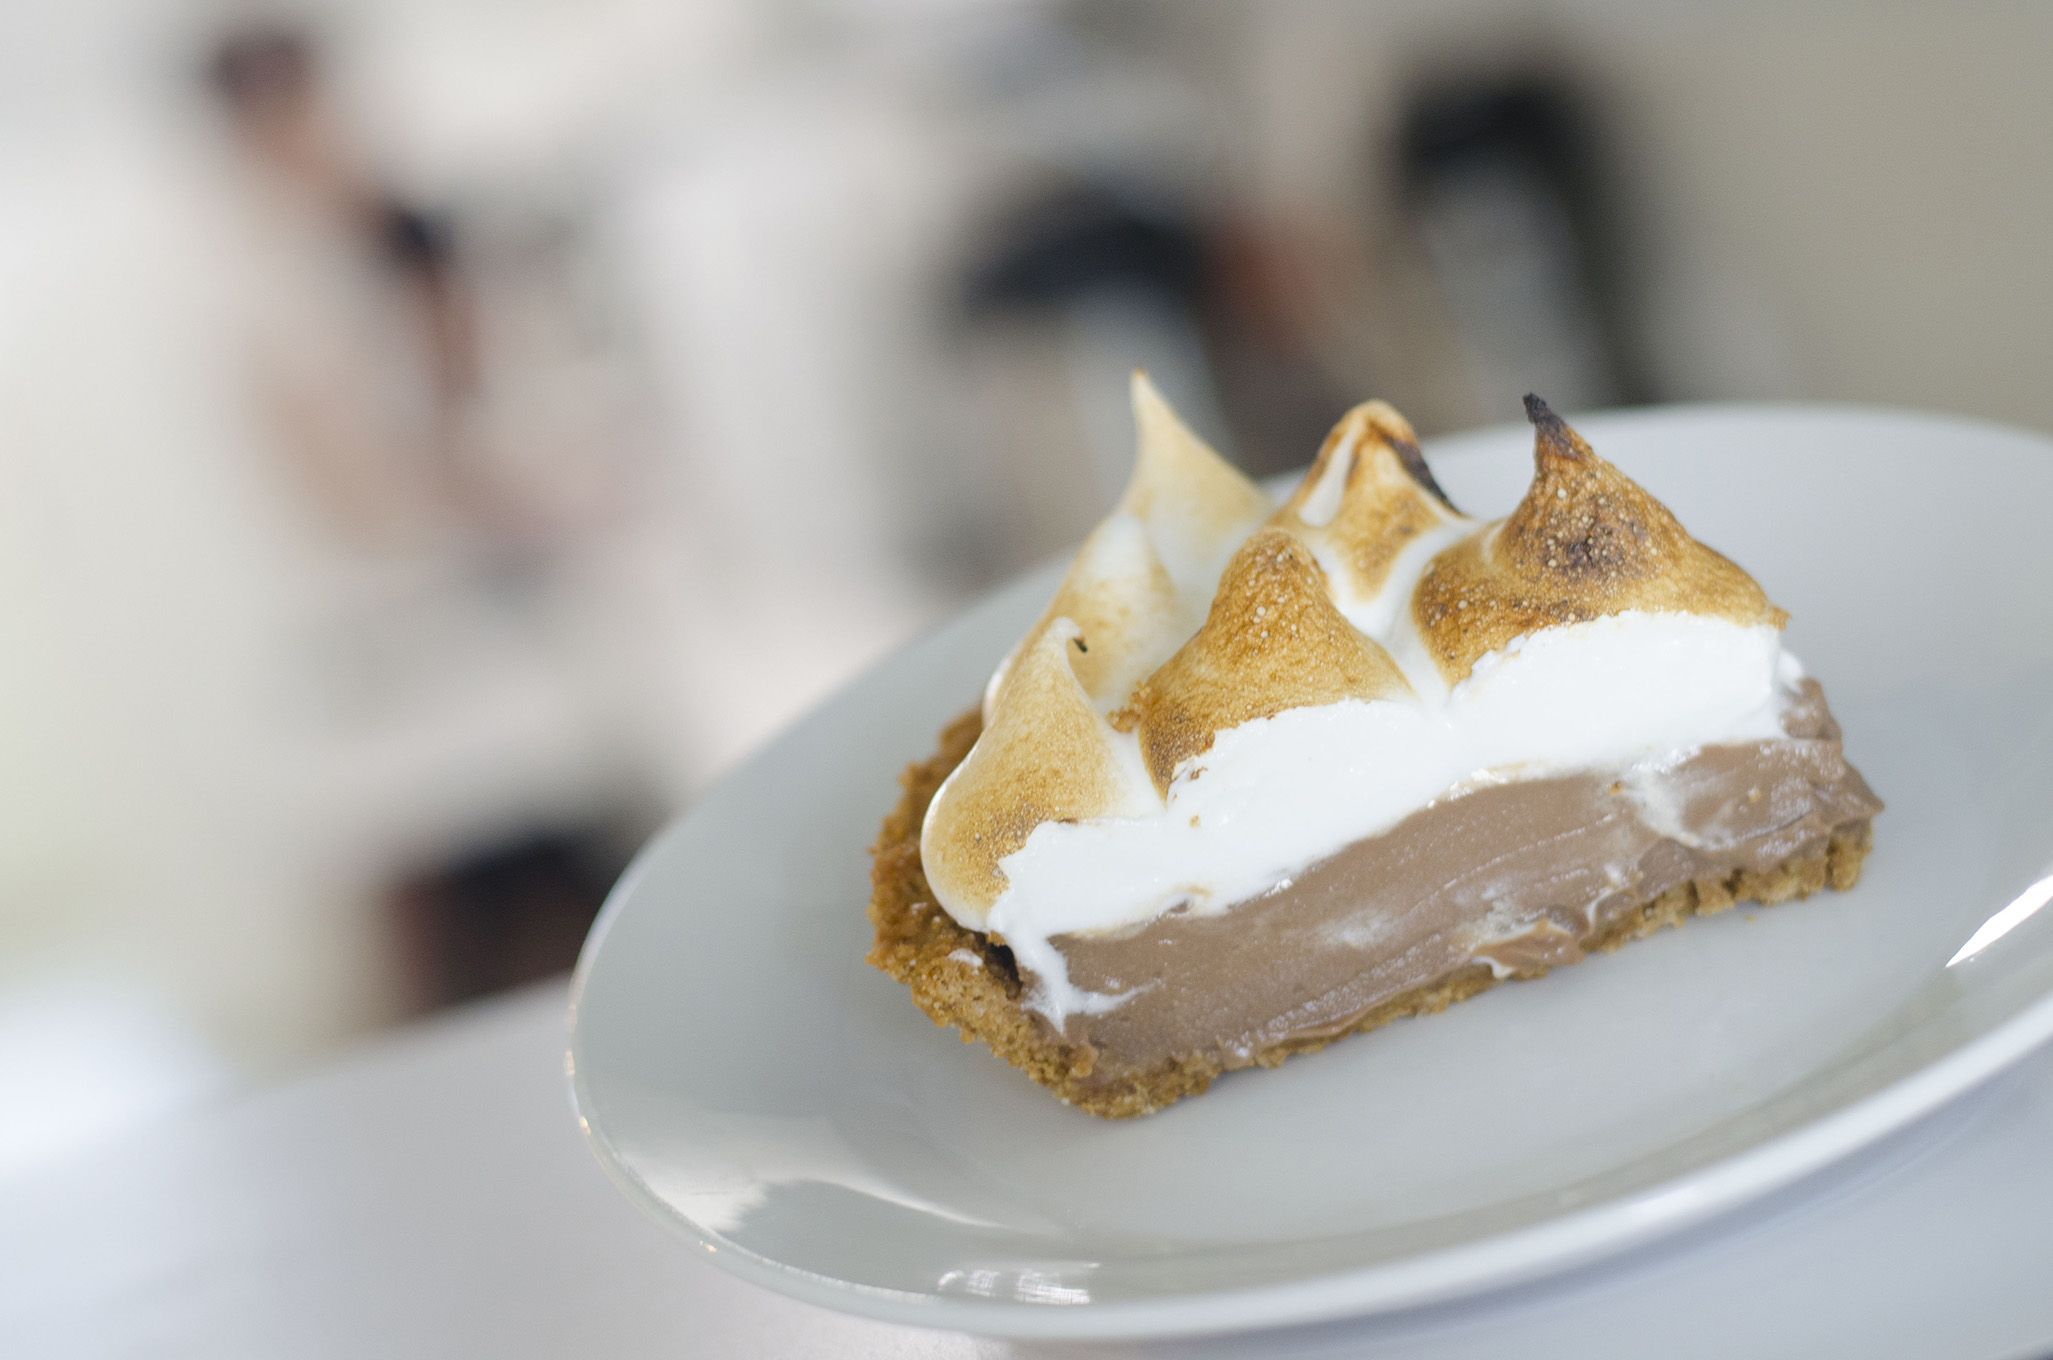 S'mores Pie from Riverside Pie Cafe in Windsor, Ontario.